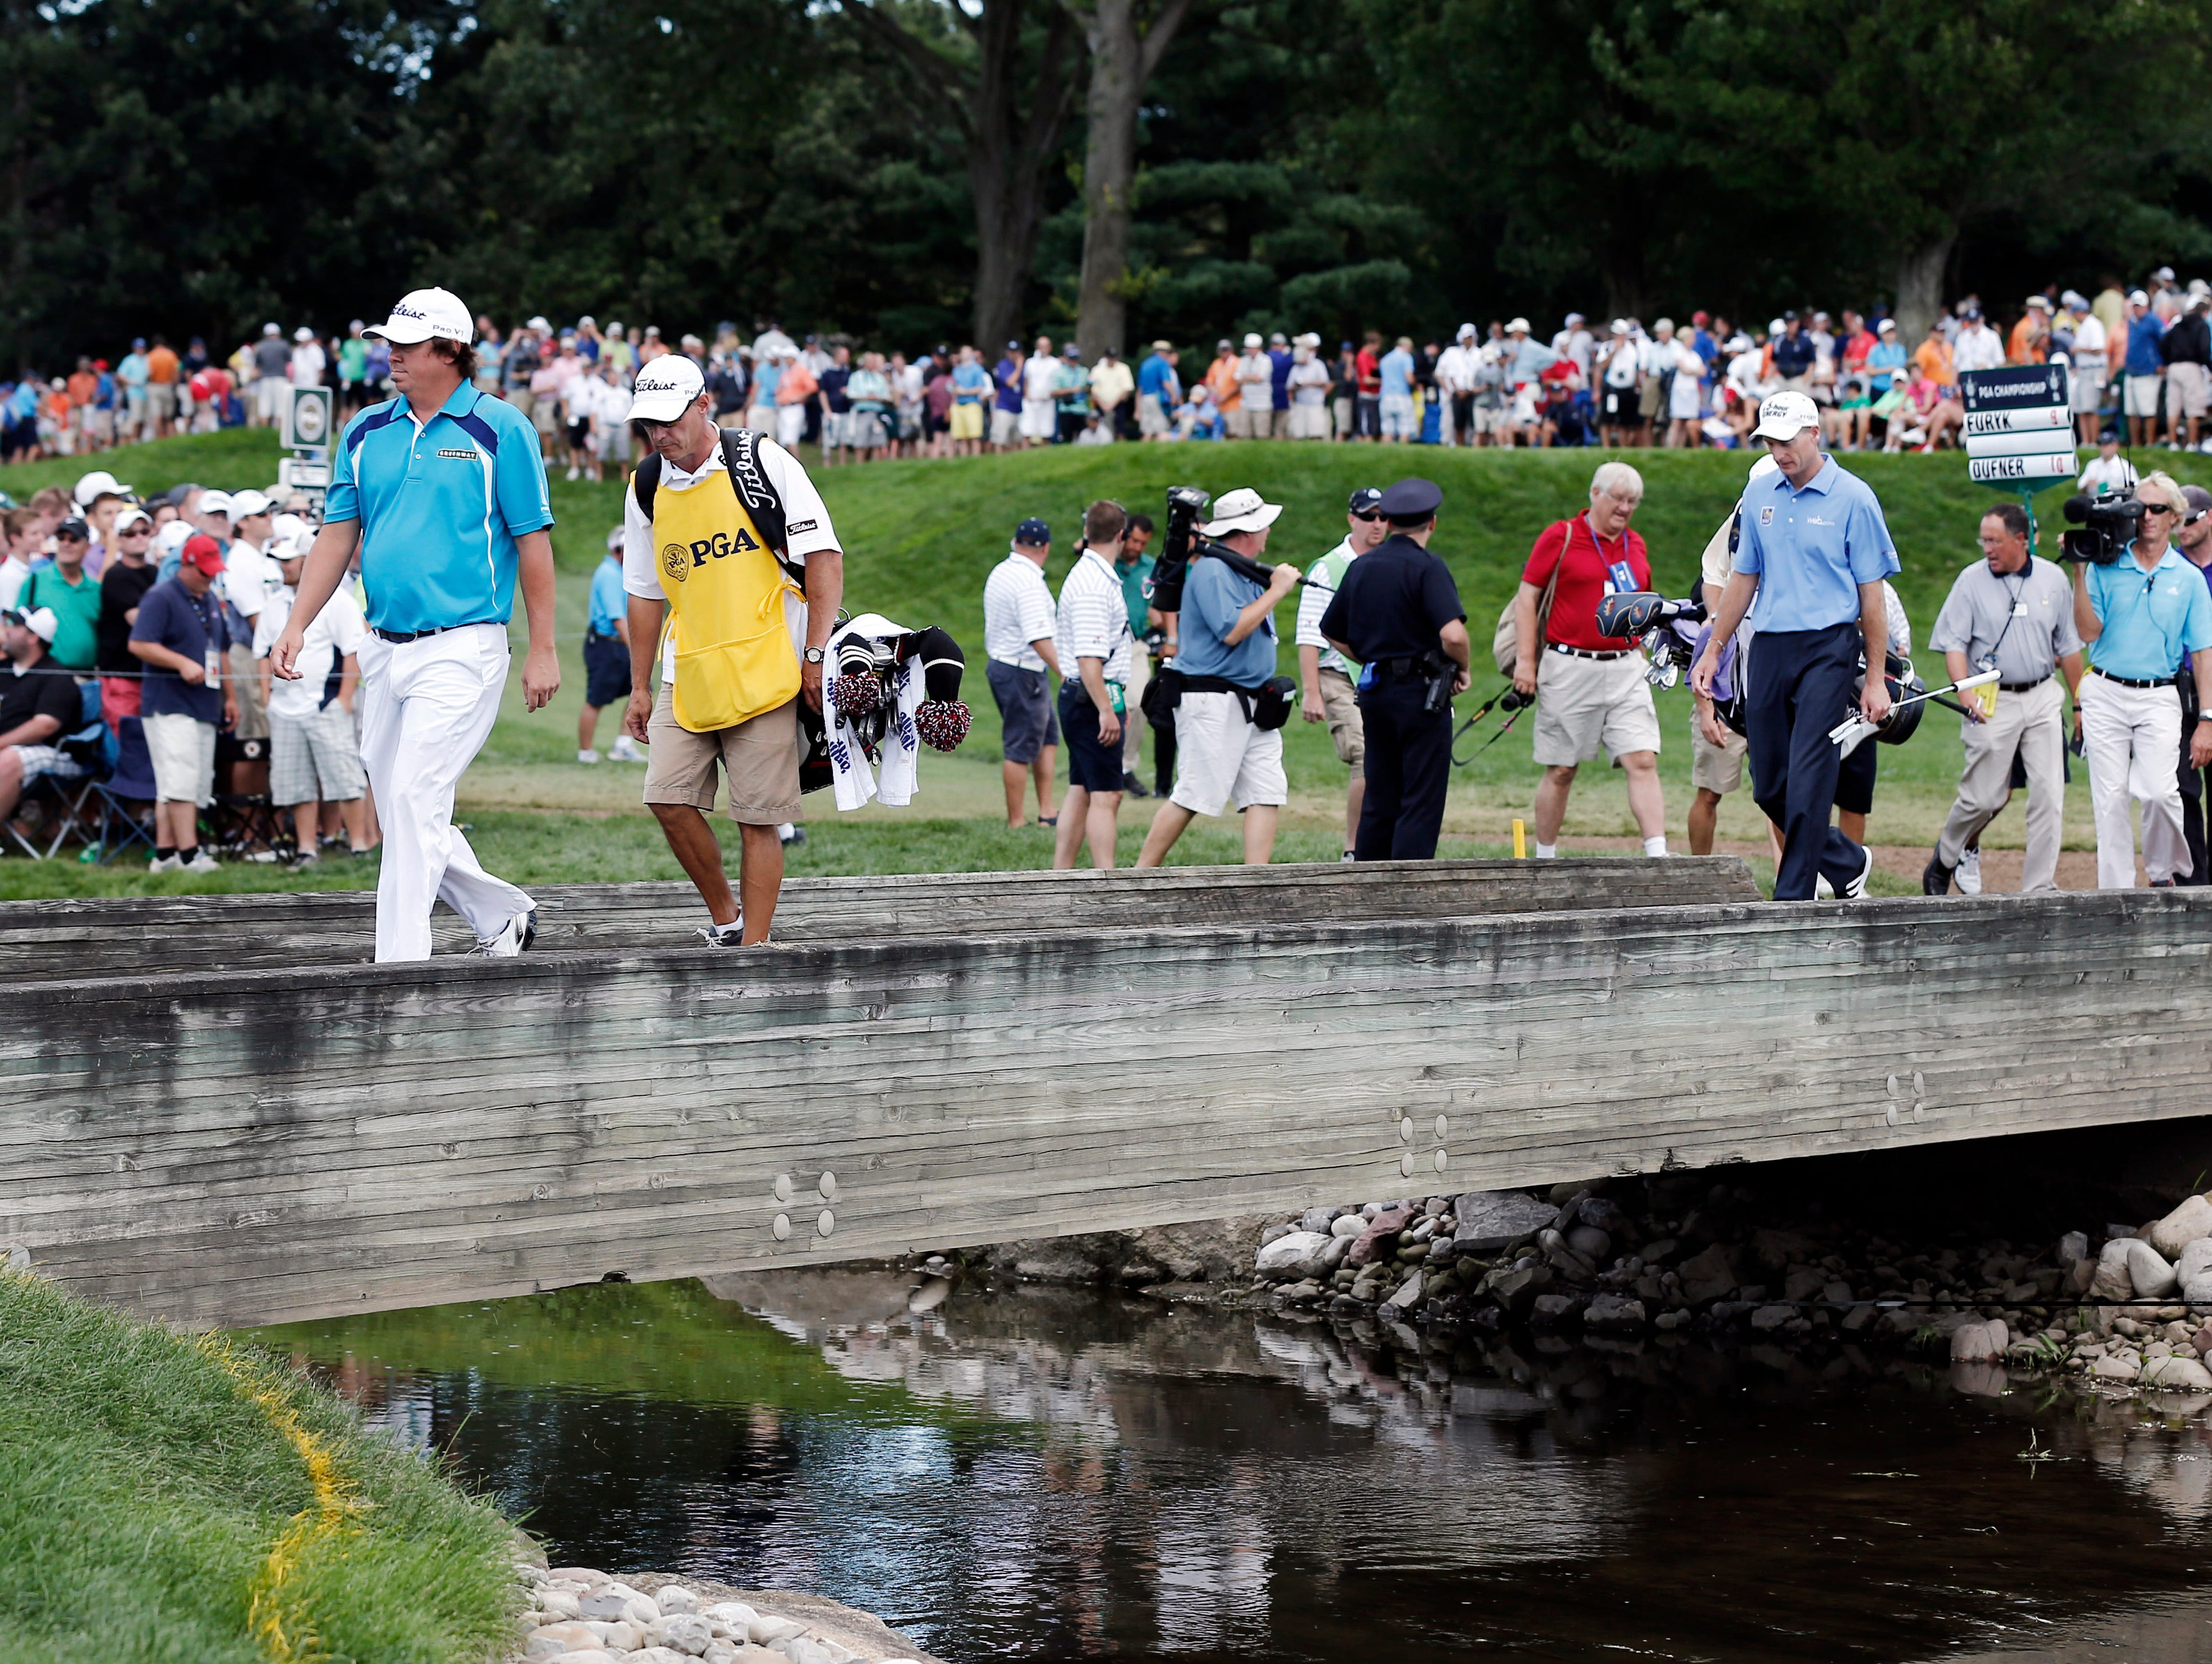 Jason Dufner and Jim Furyk walk to the No. 6 green.